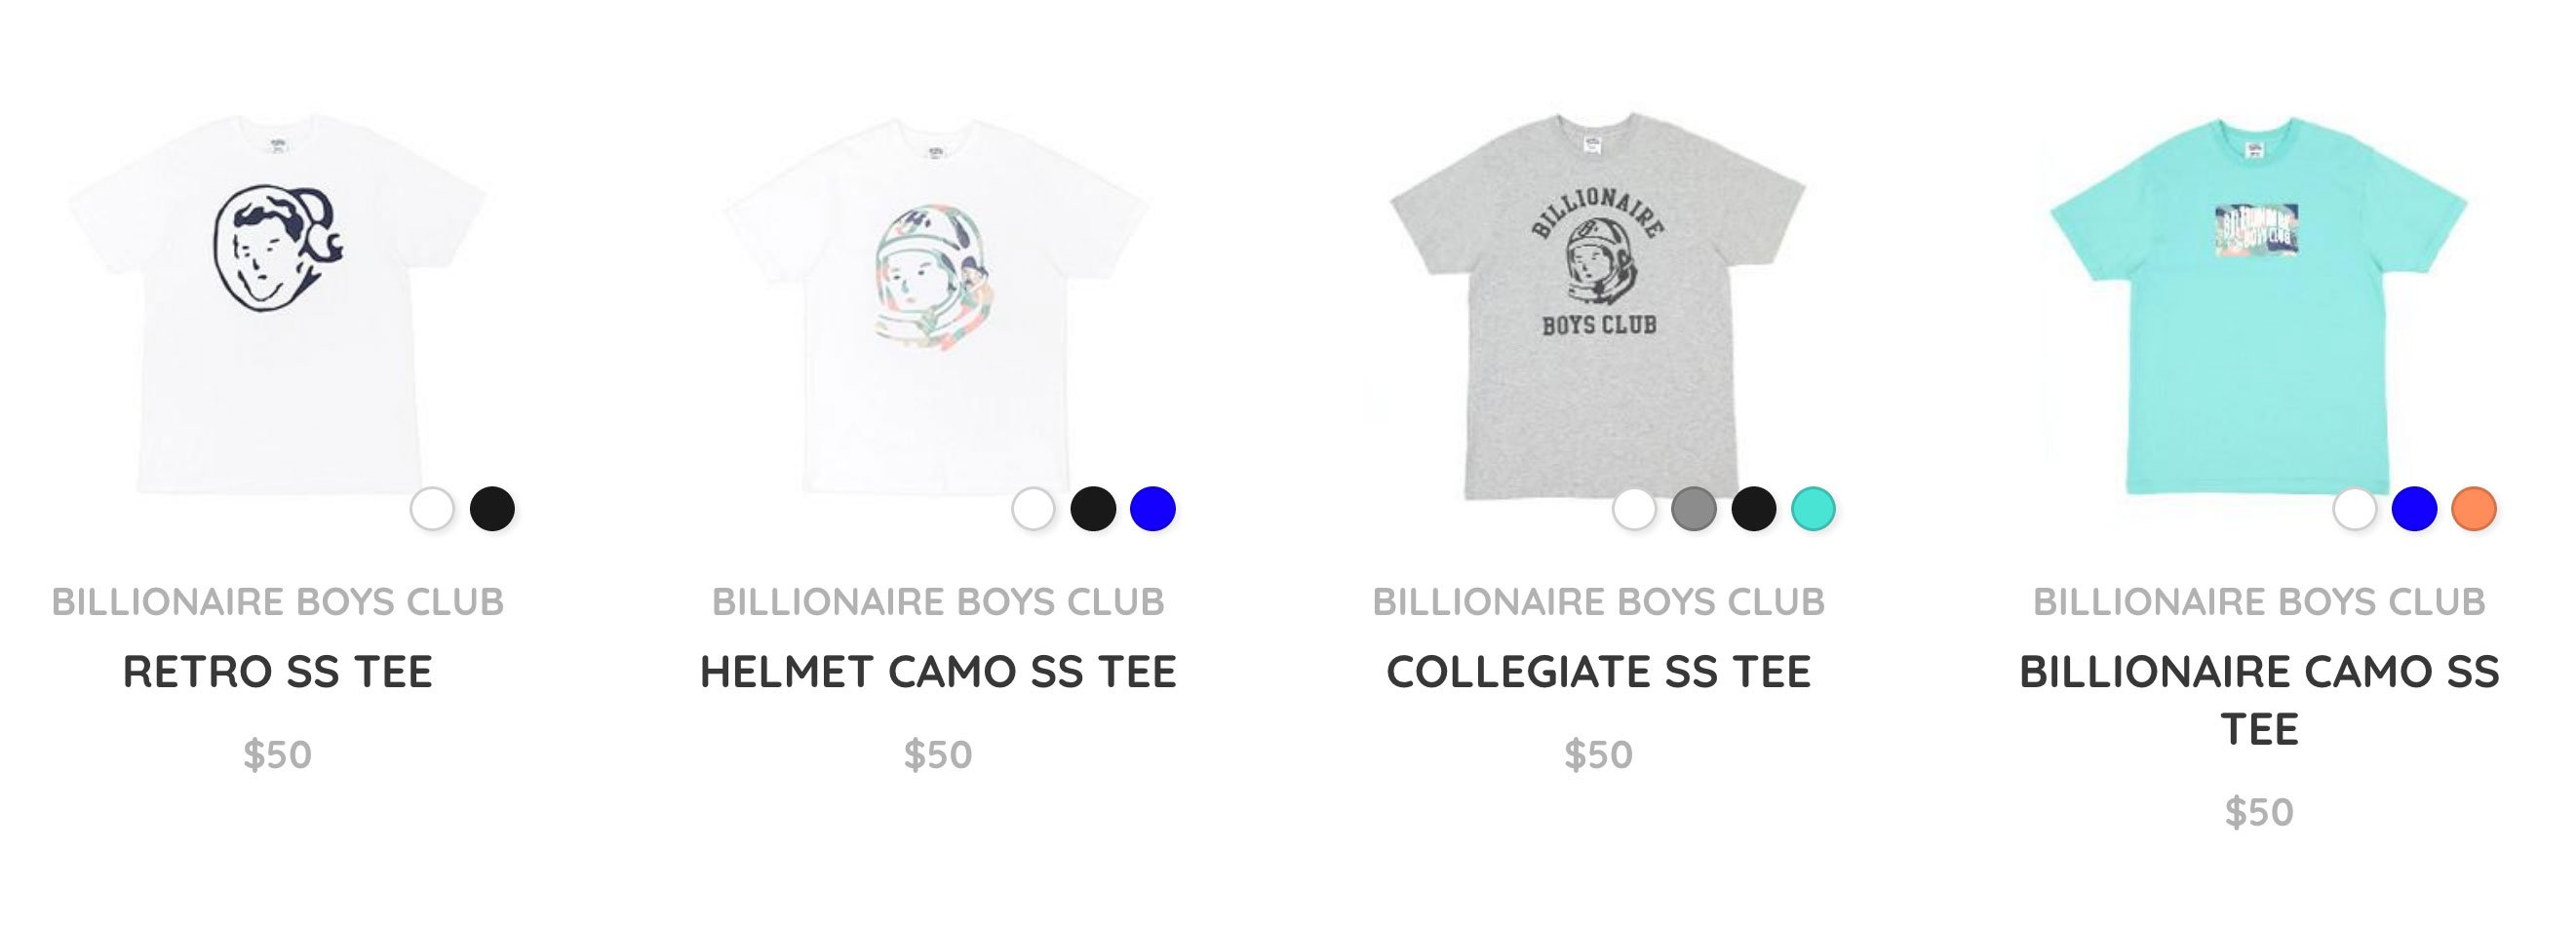 Billionaire Boys Club Example